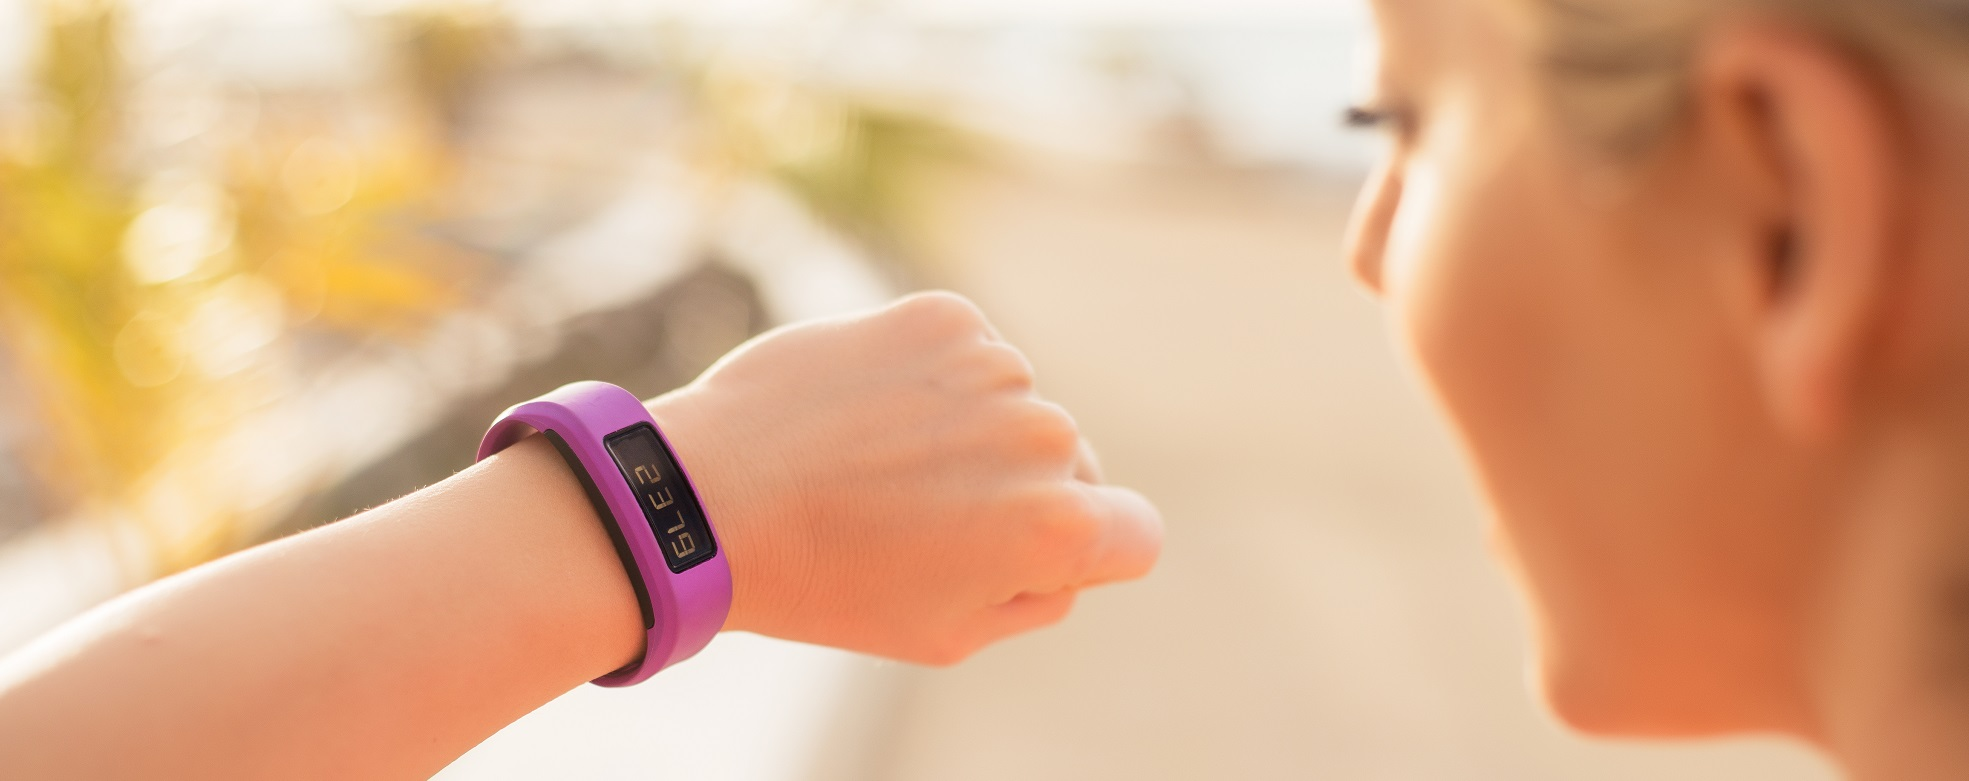 F A Q  - How to Sync Flo with Fitness Trackers and Health Apps